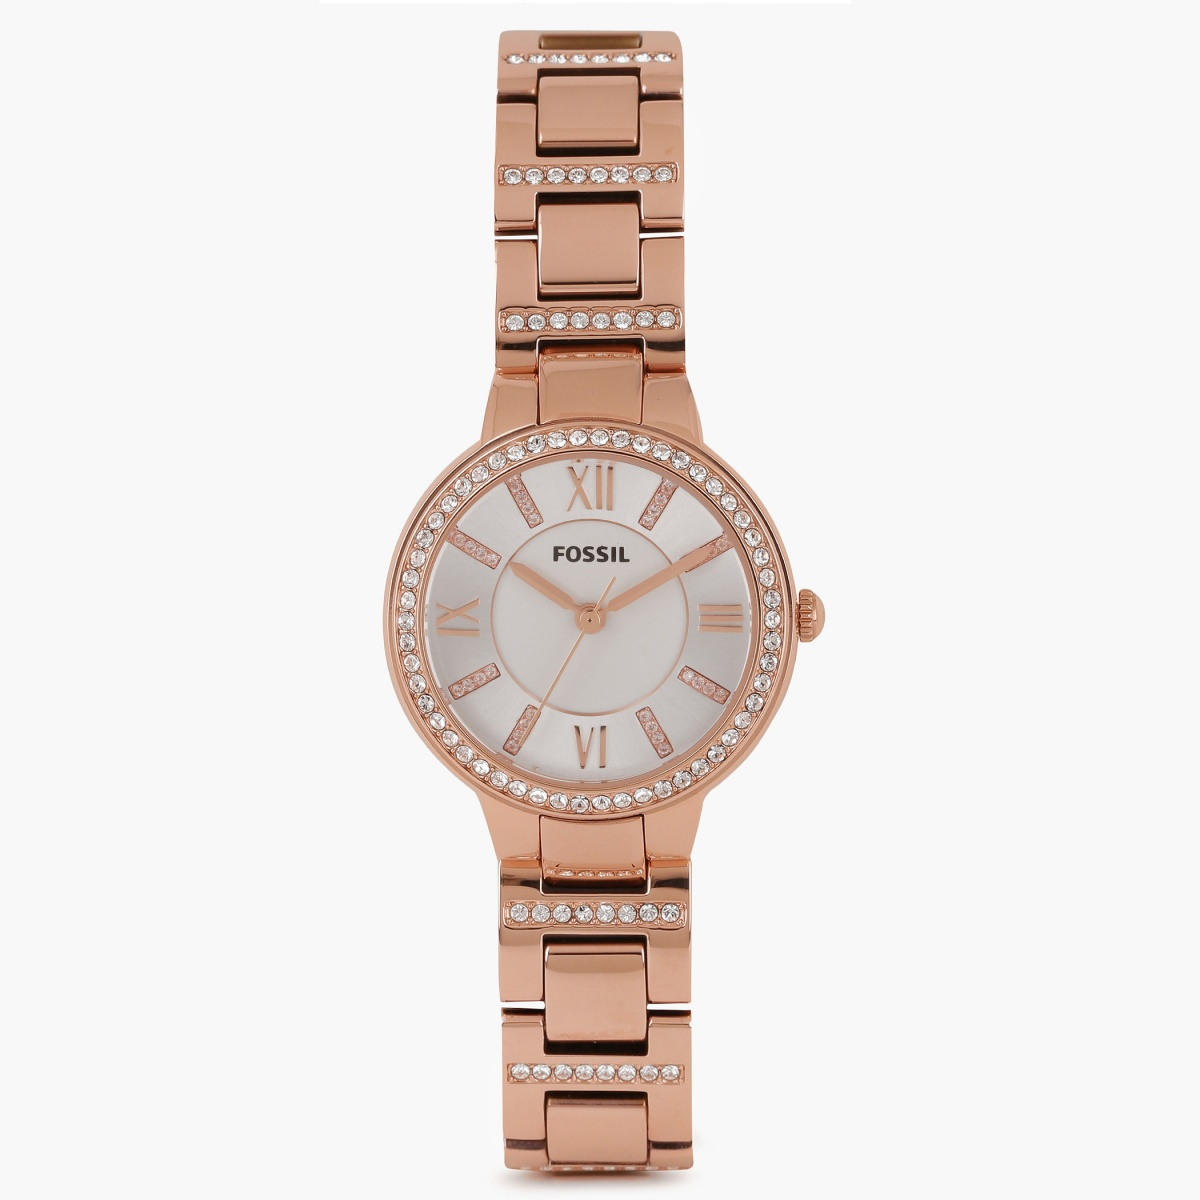 FOSSIL Virginia Women's Analog Watch - ES3284I